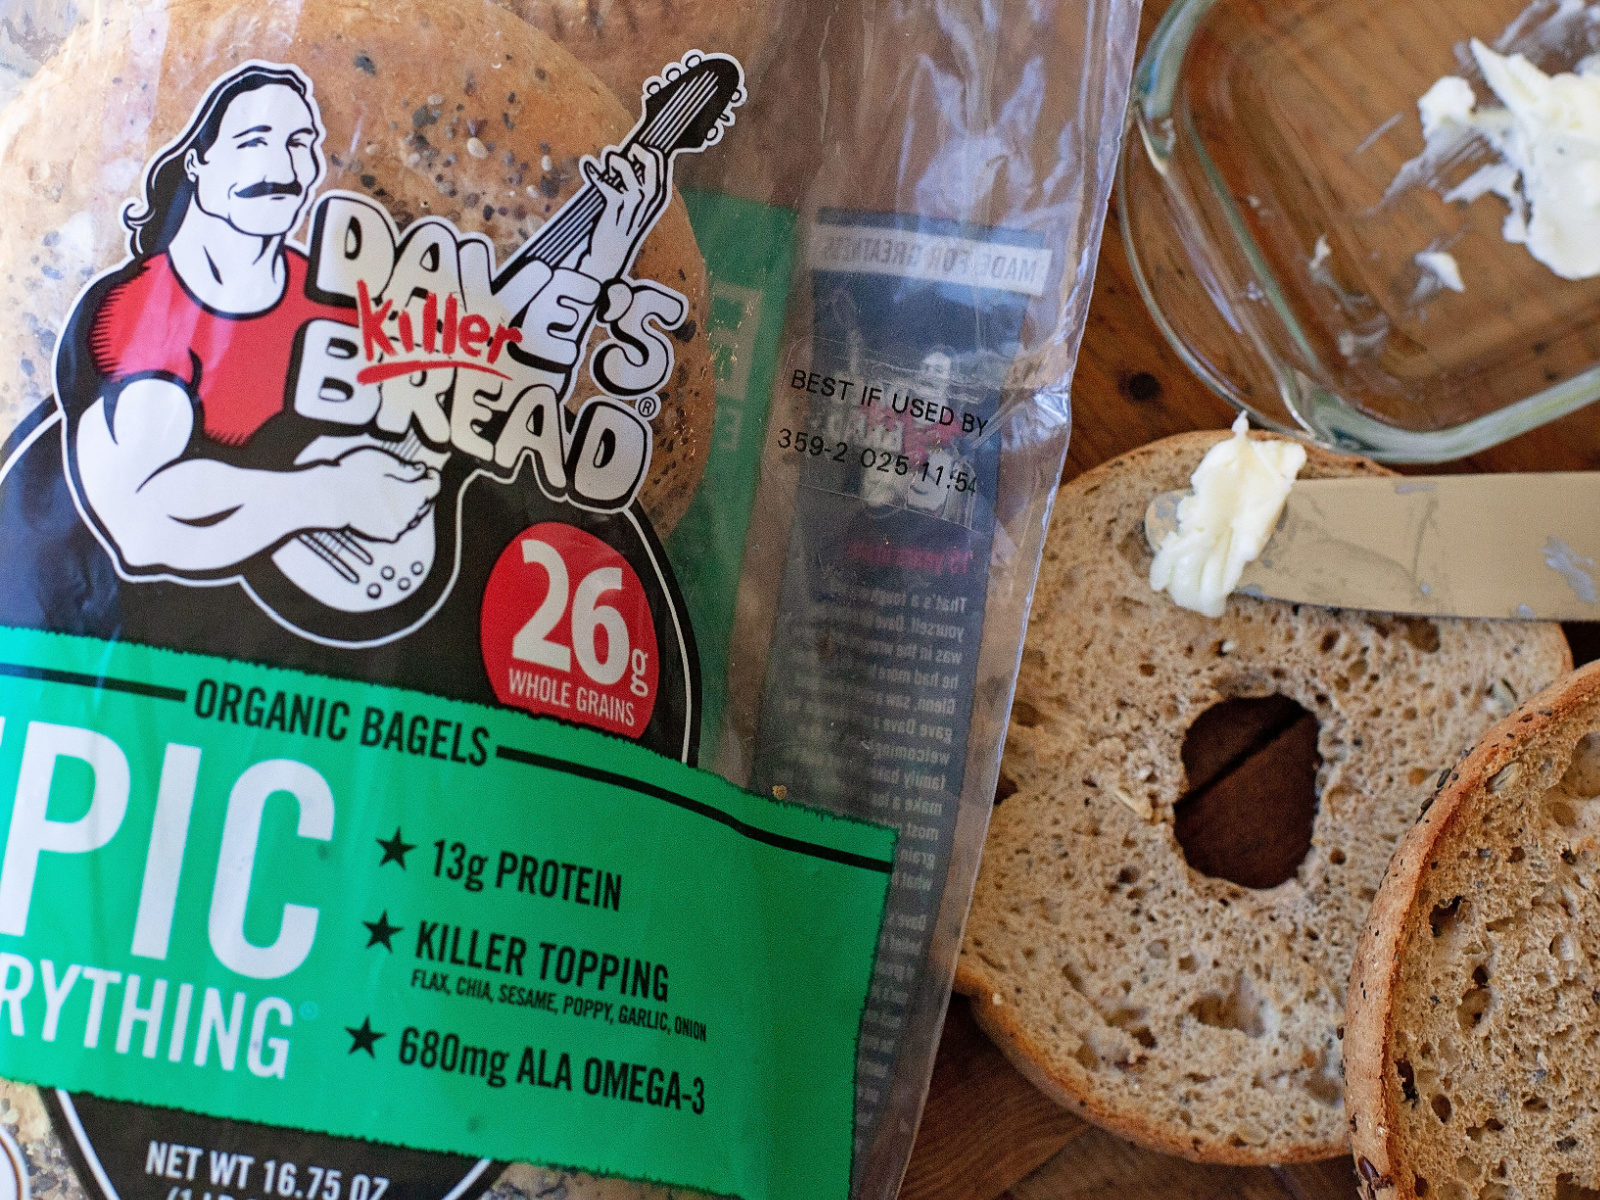 Dave's Killer Bread Organic Bagels Just $2 - Deal Ends Soon! on I Heart Publix